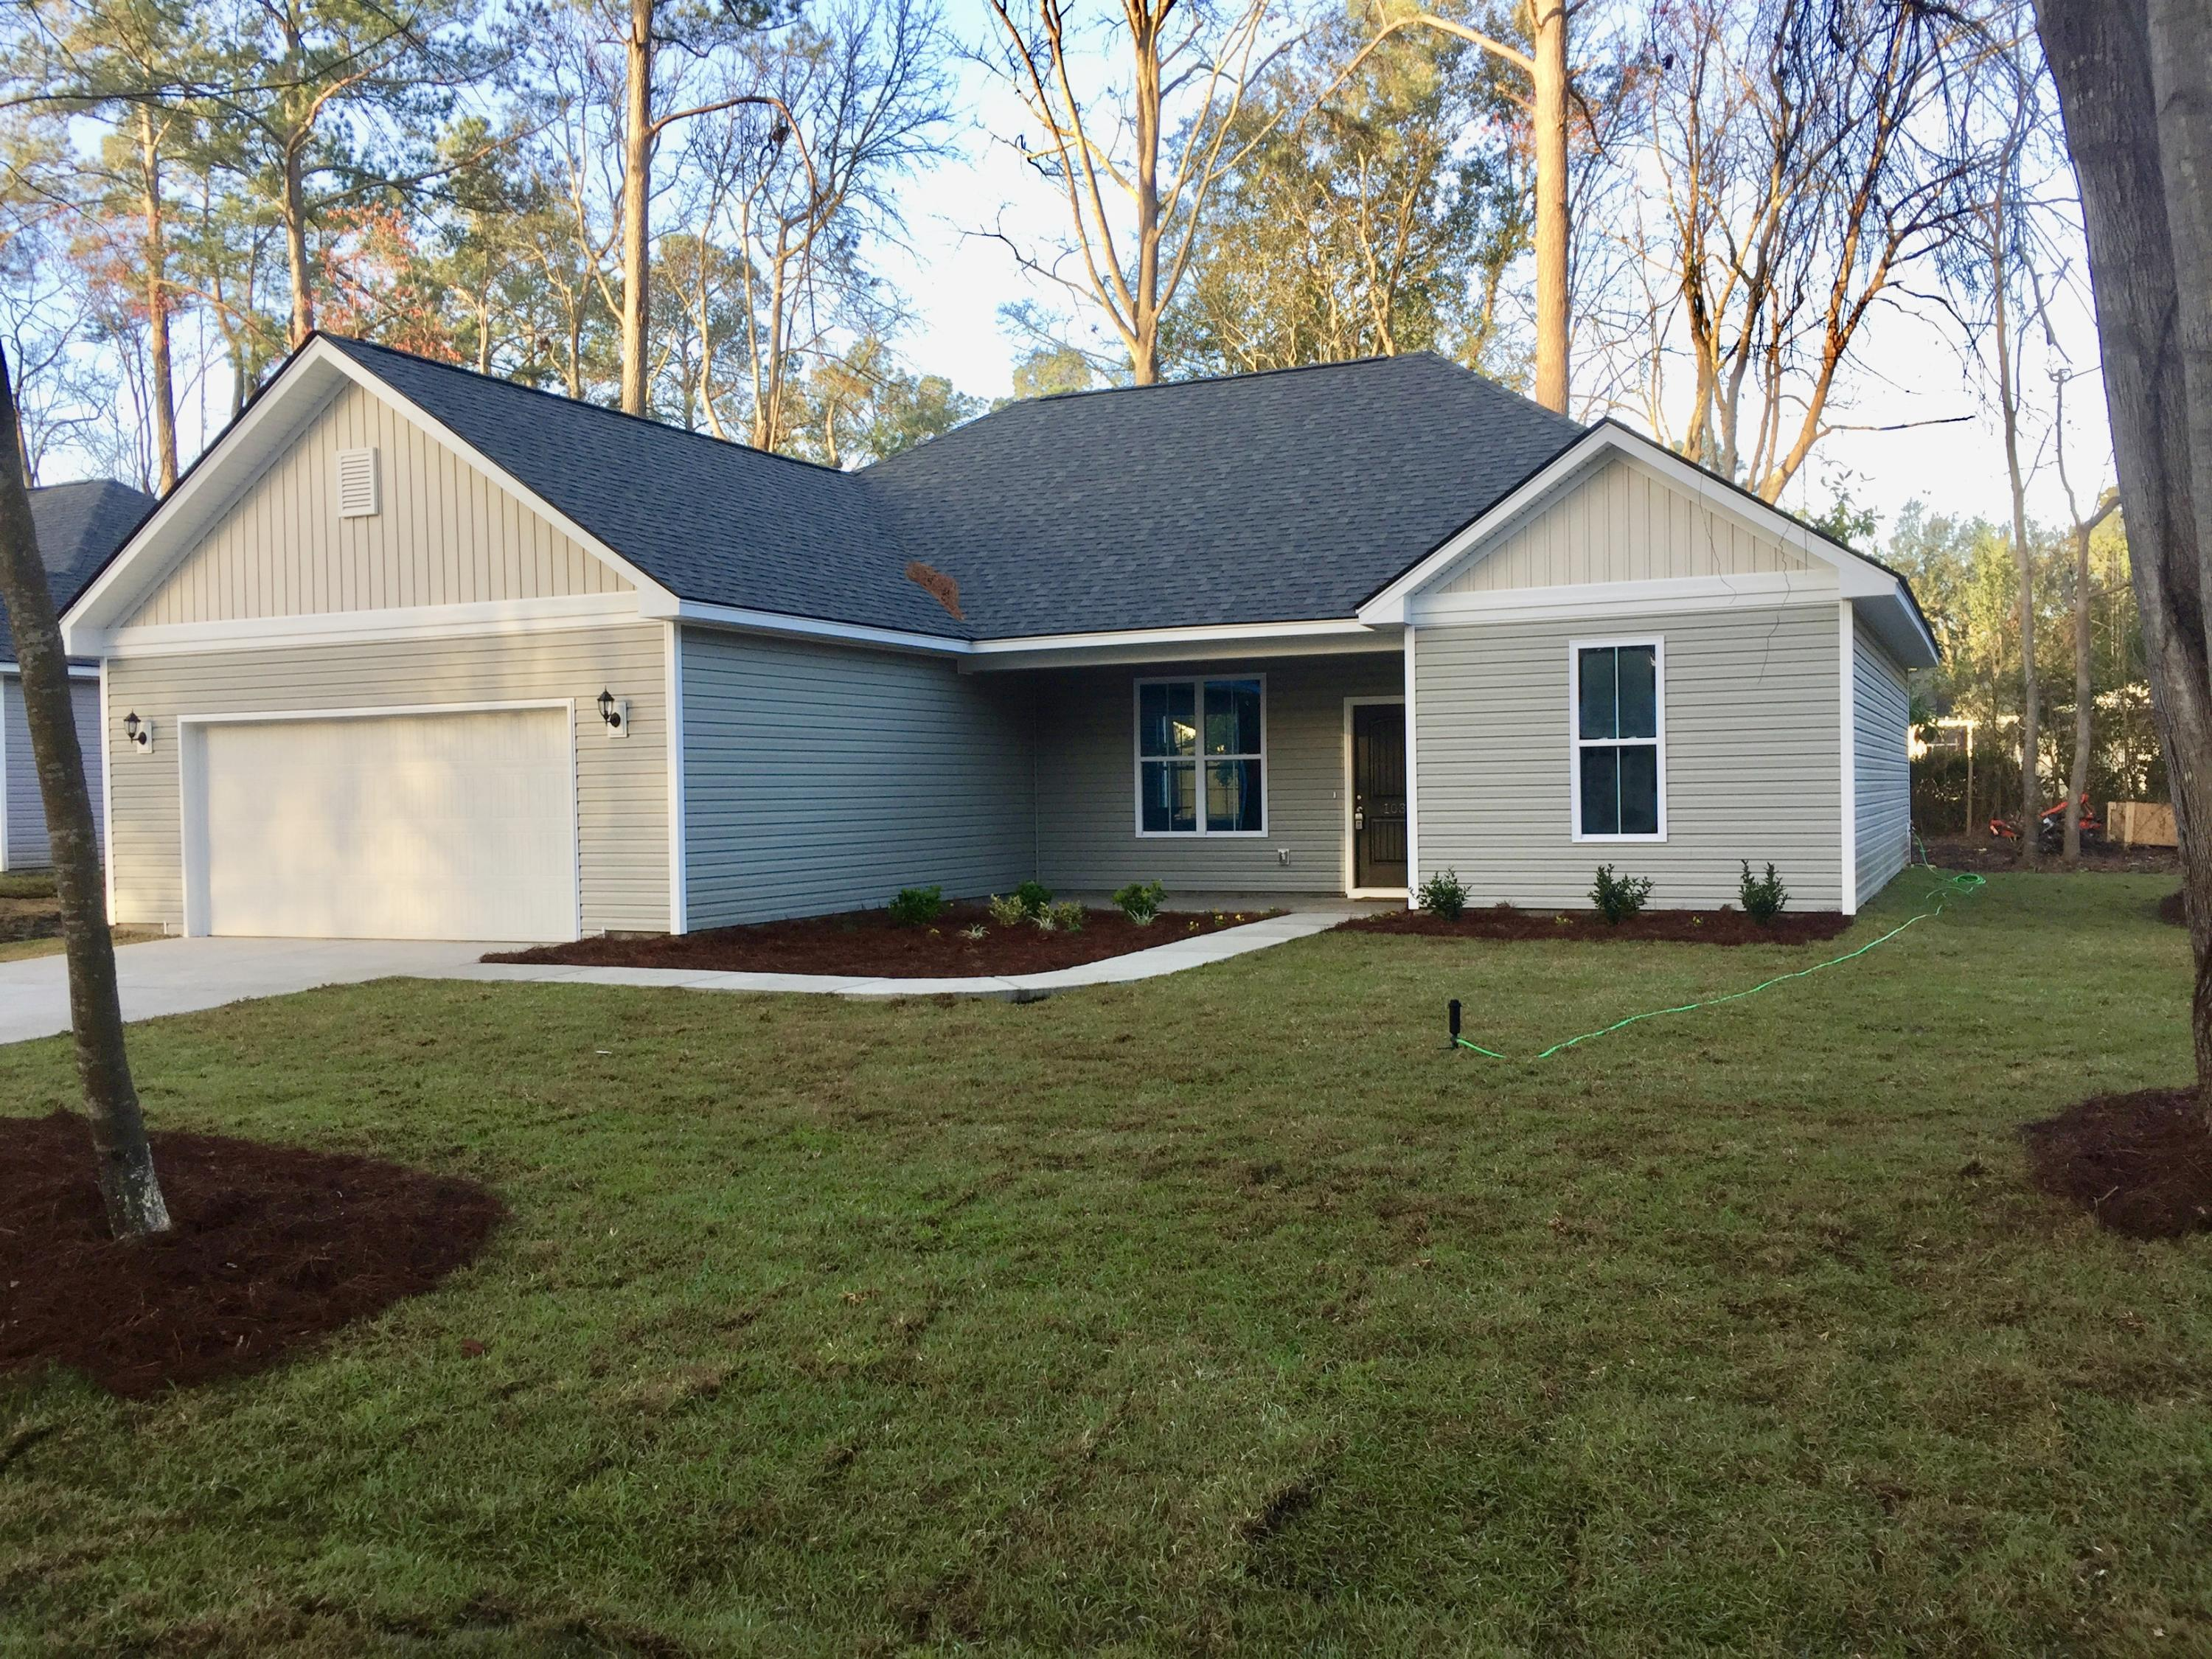 Summerville Heights Homes For Sale - 103 Mary, Summerville, SC - 28